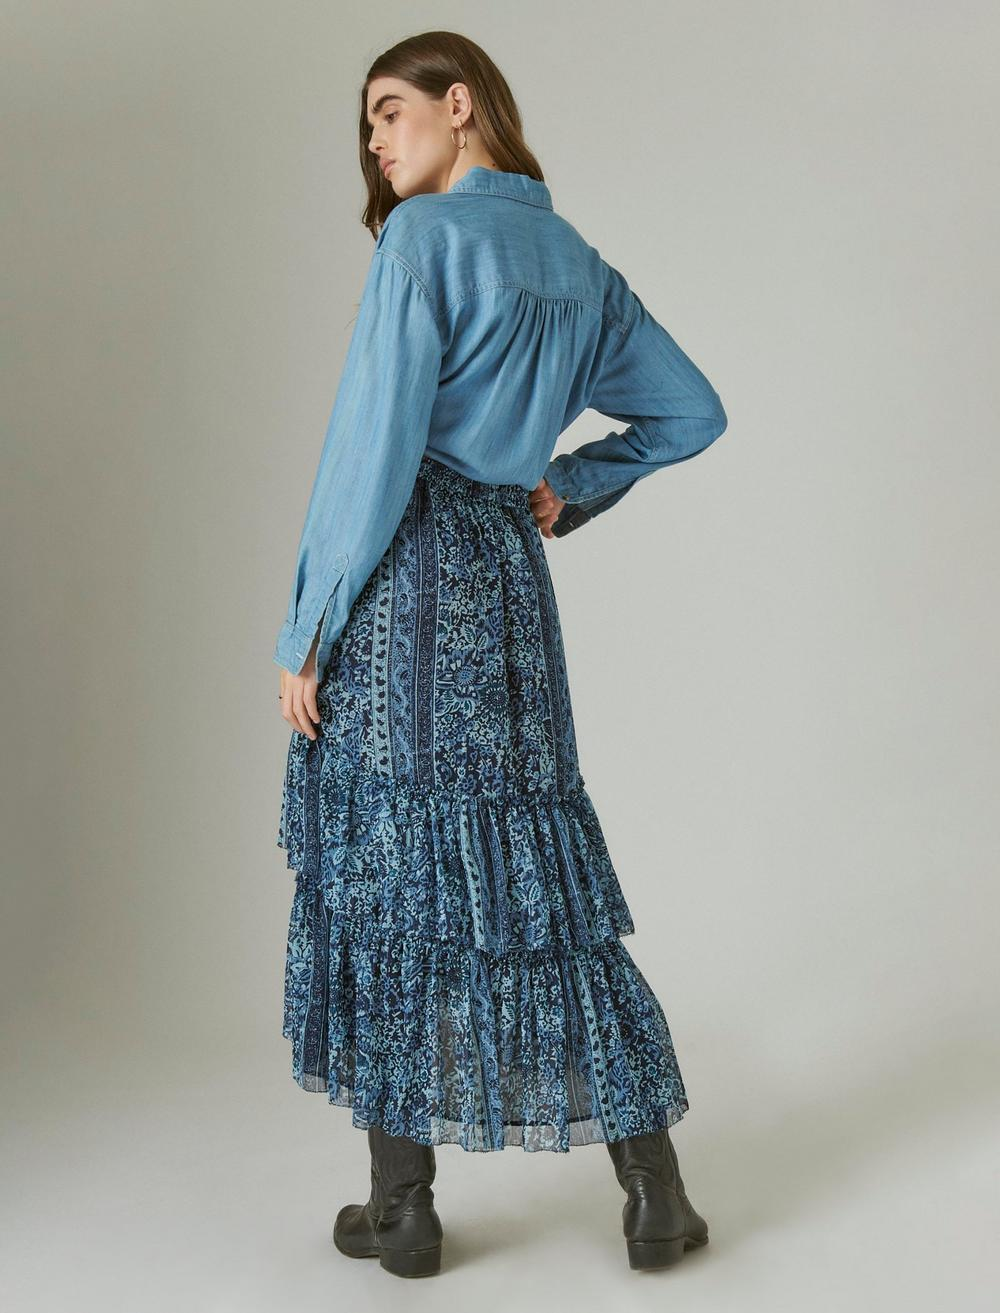 FLORAL PRINT TIERED MAXI SKIRT, image 3